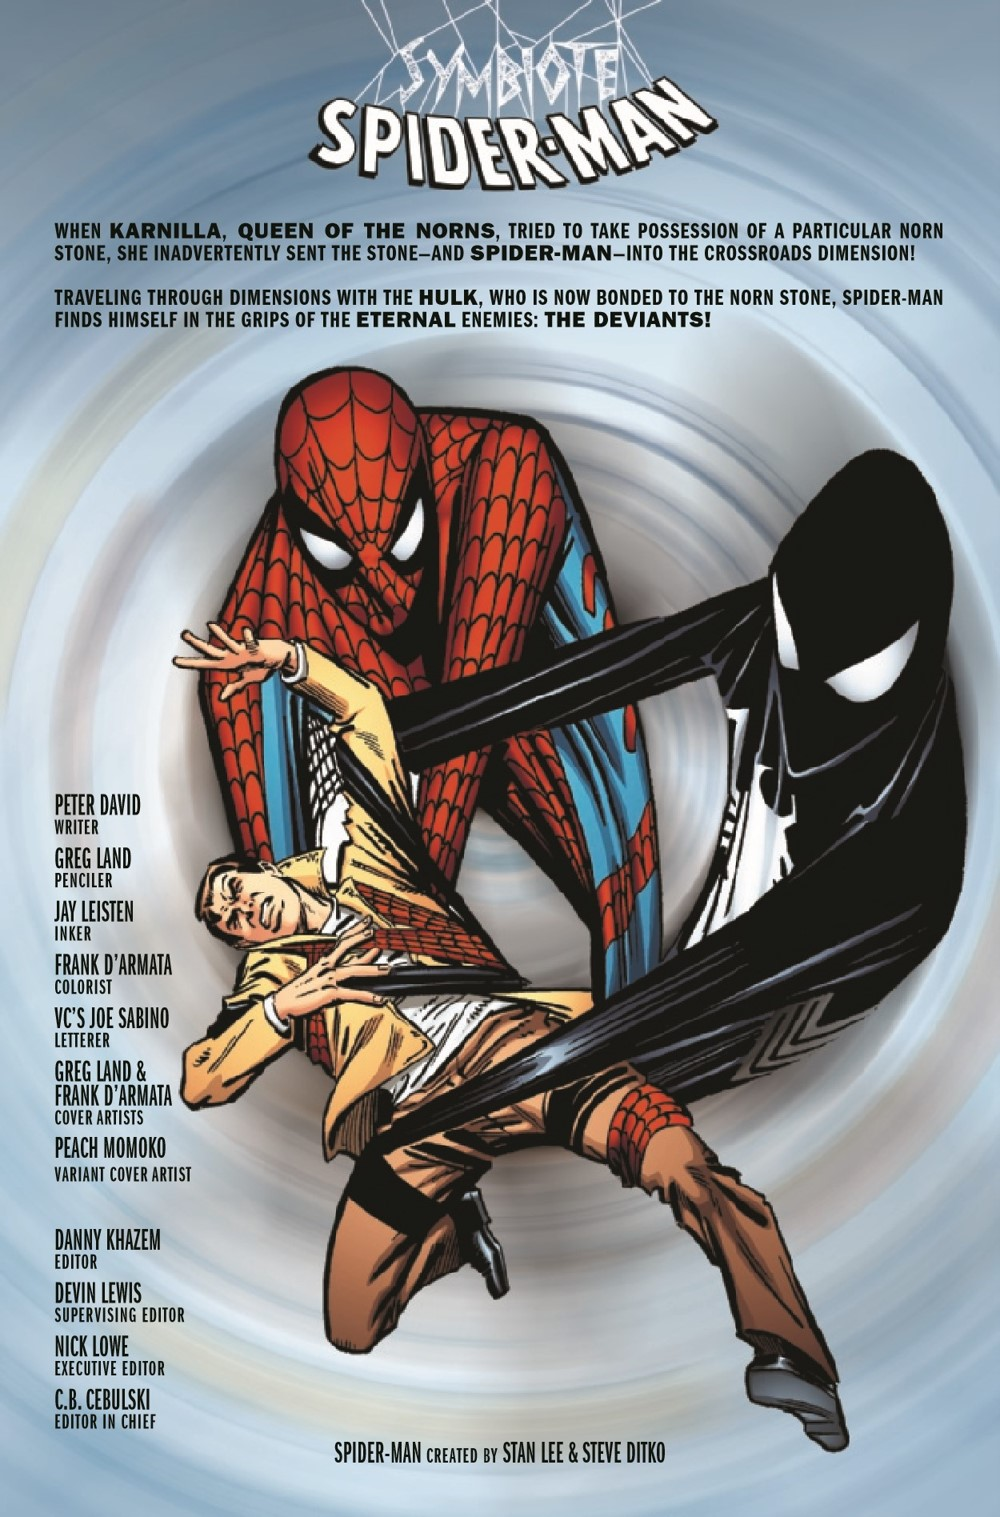 SYMBIOTESMCR2021004_Preview-2 ComicList Previews: SYMBIOTE SPIDER-MAN CROSSROADS #4 (OF 5)